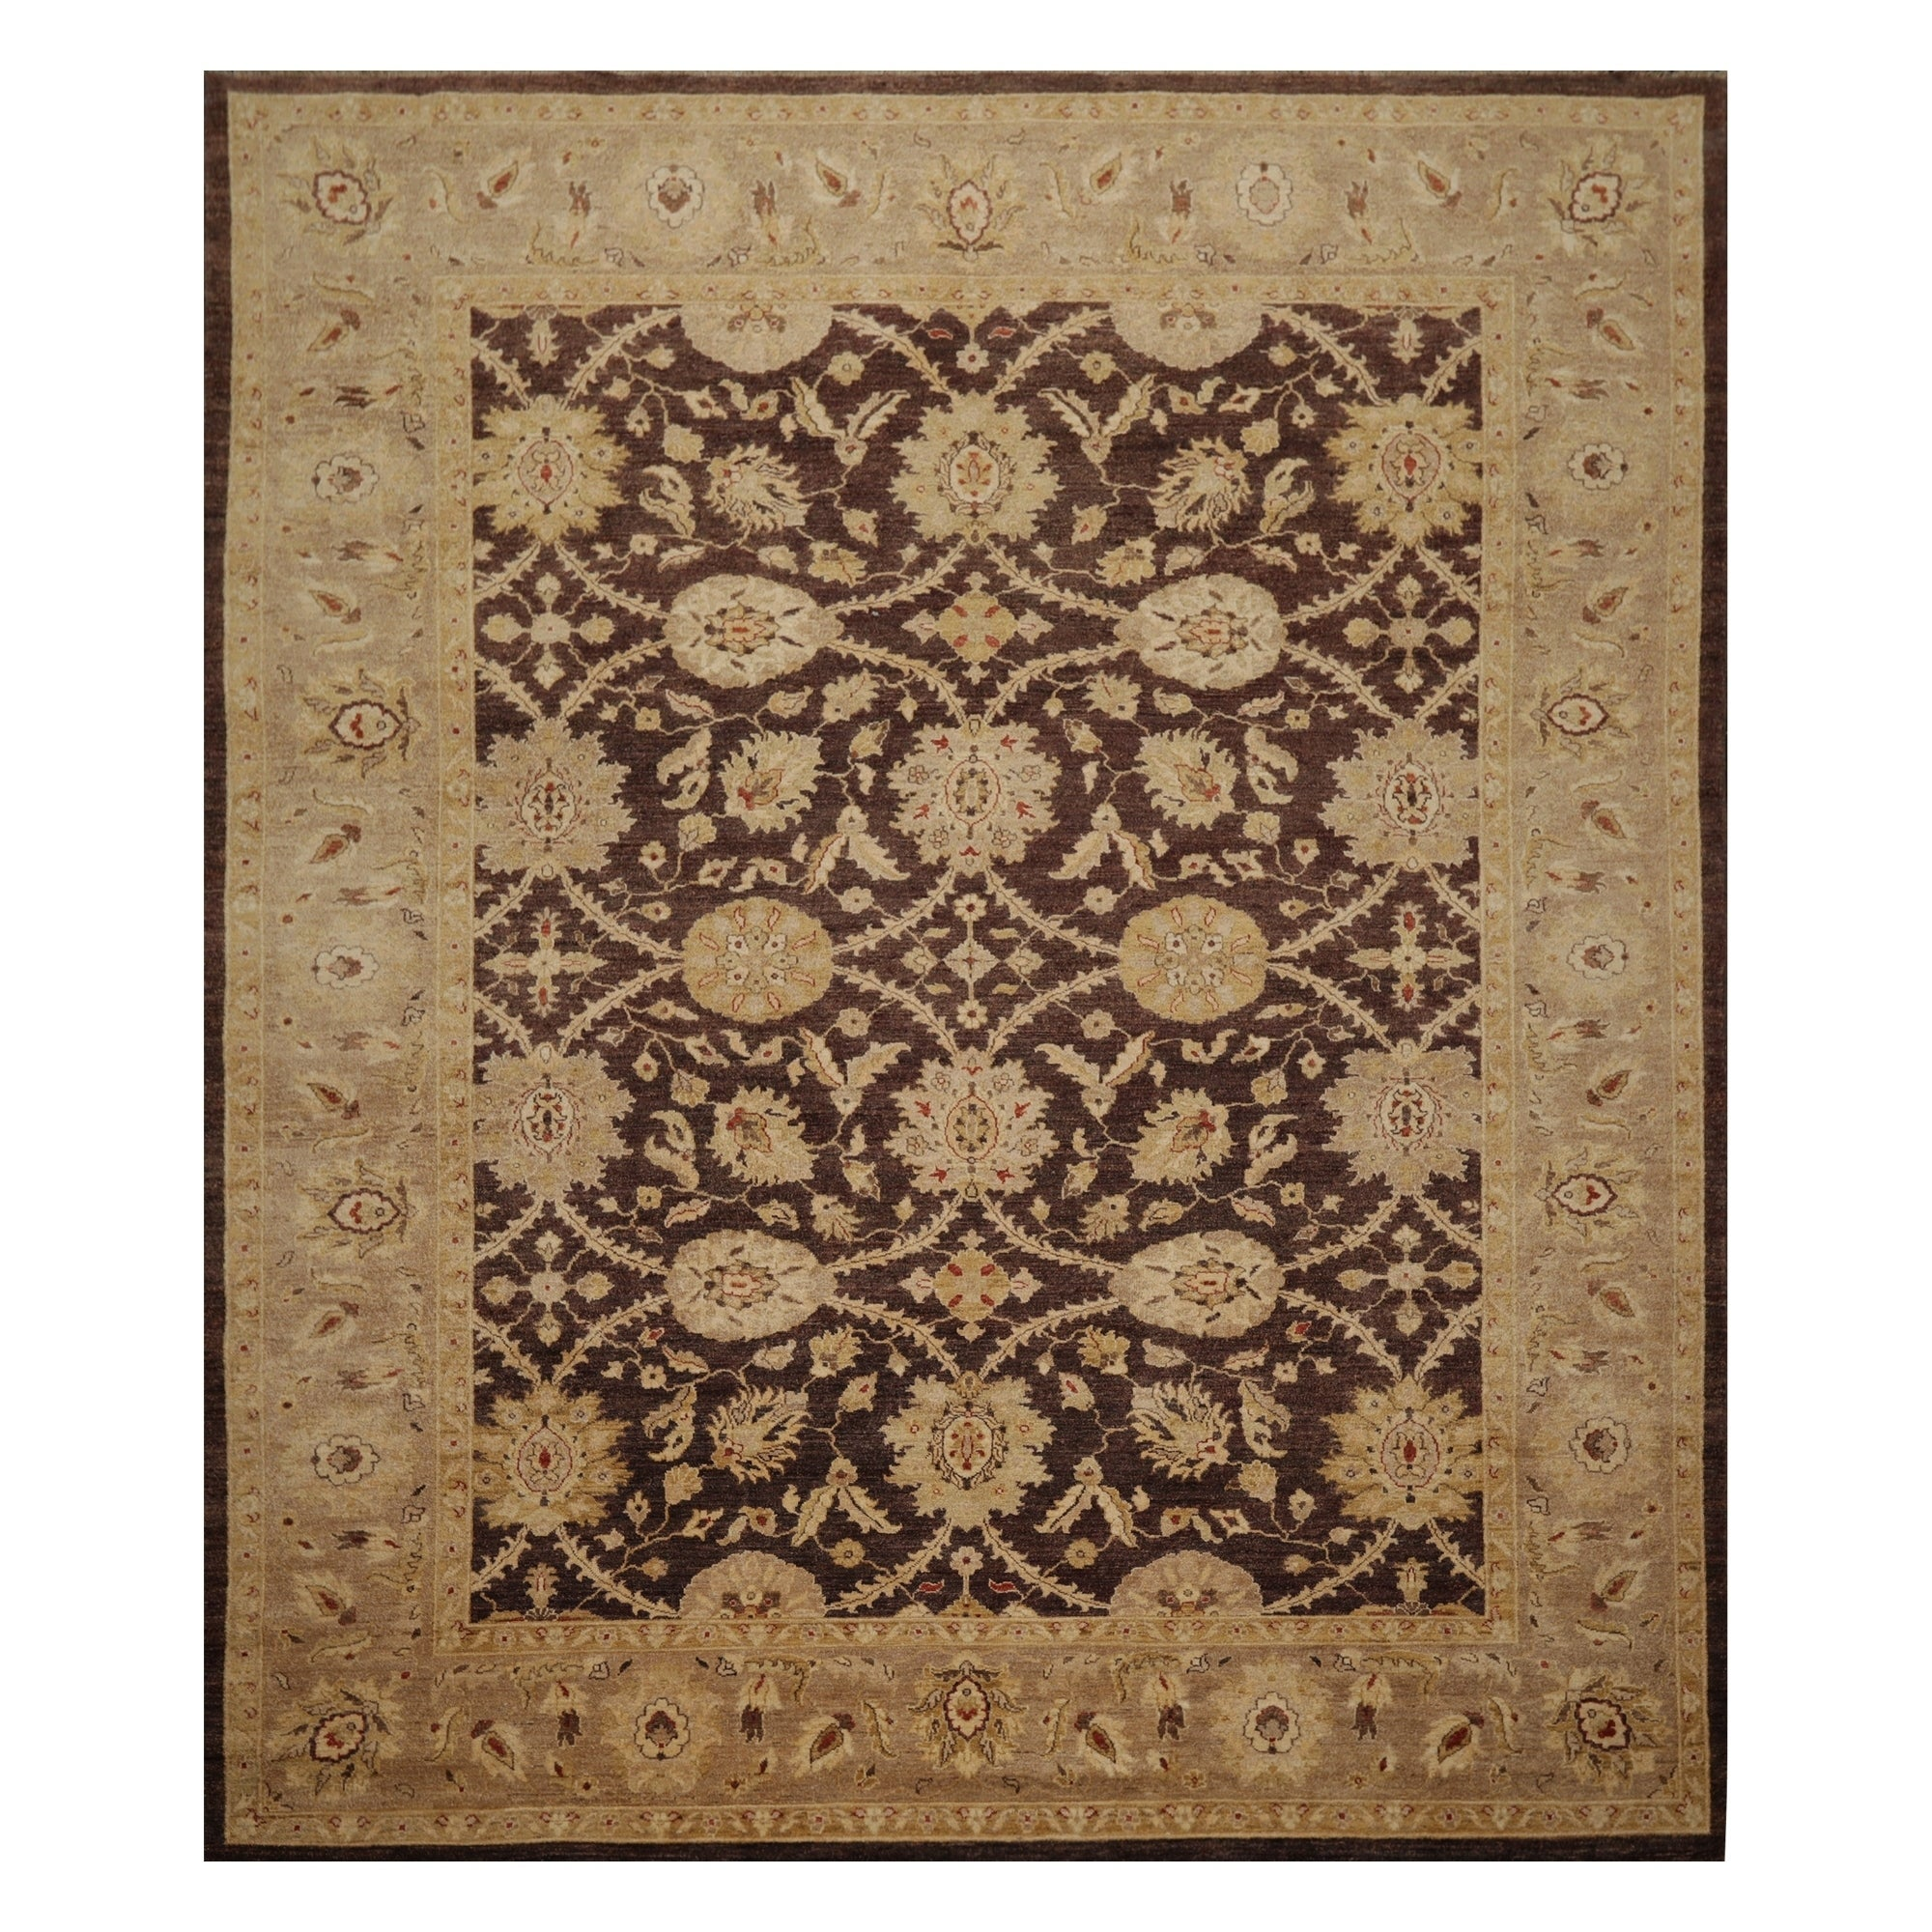 Peshawar Hand Knotted Brown Tan Wool Persian Oriental Area Rug 9x12 08 09 X 11 06 On Sale Overstock 31030097